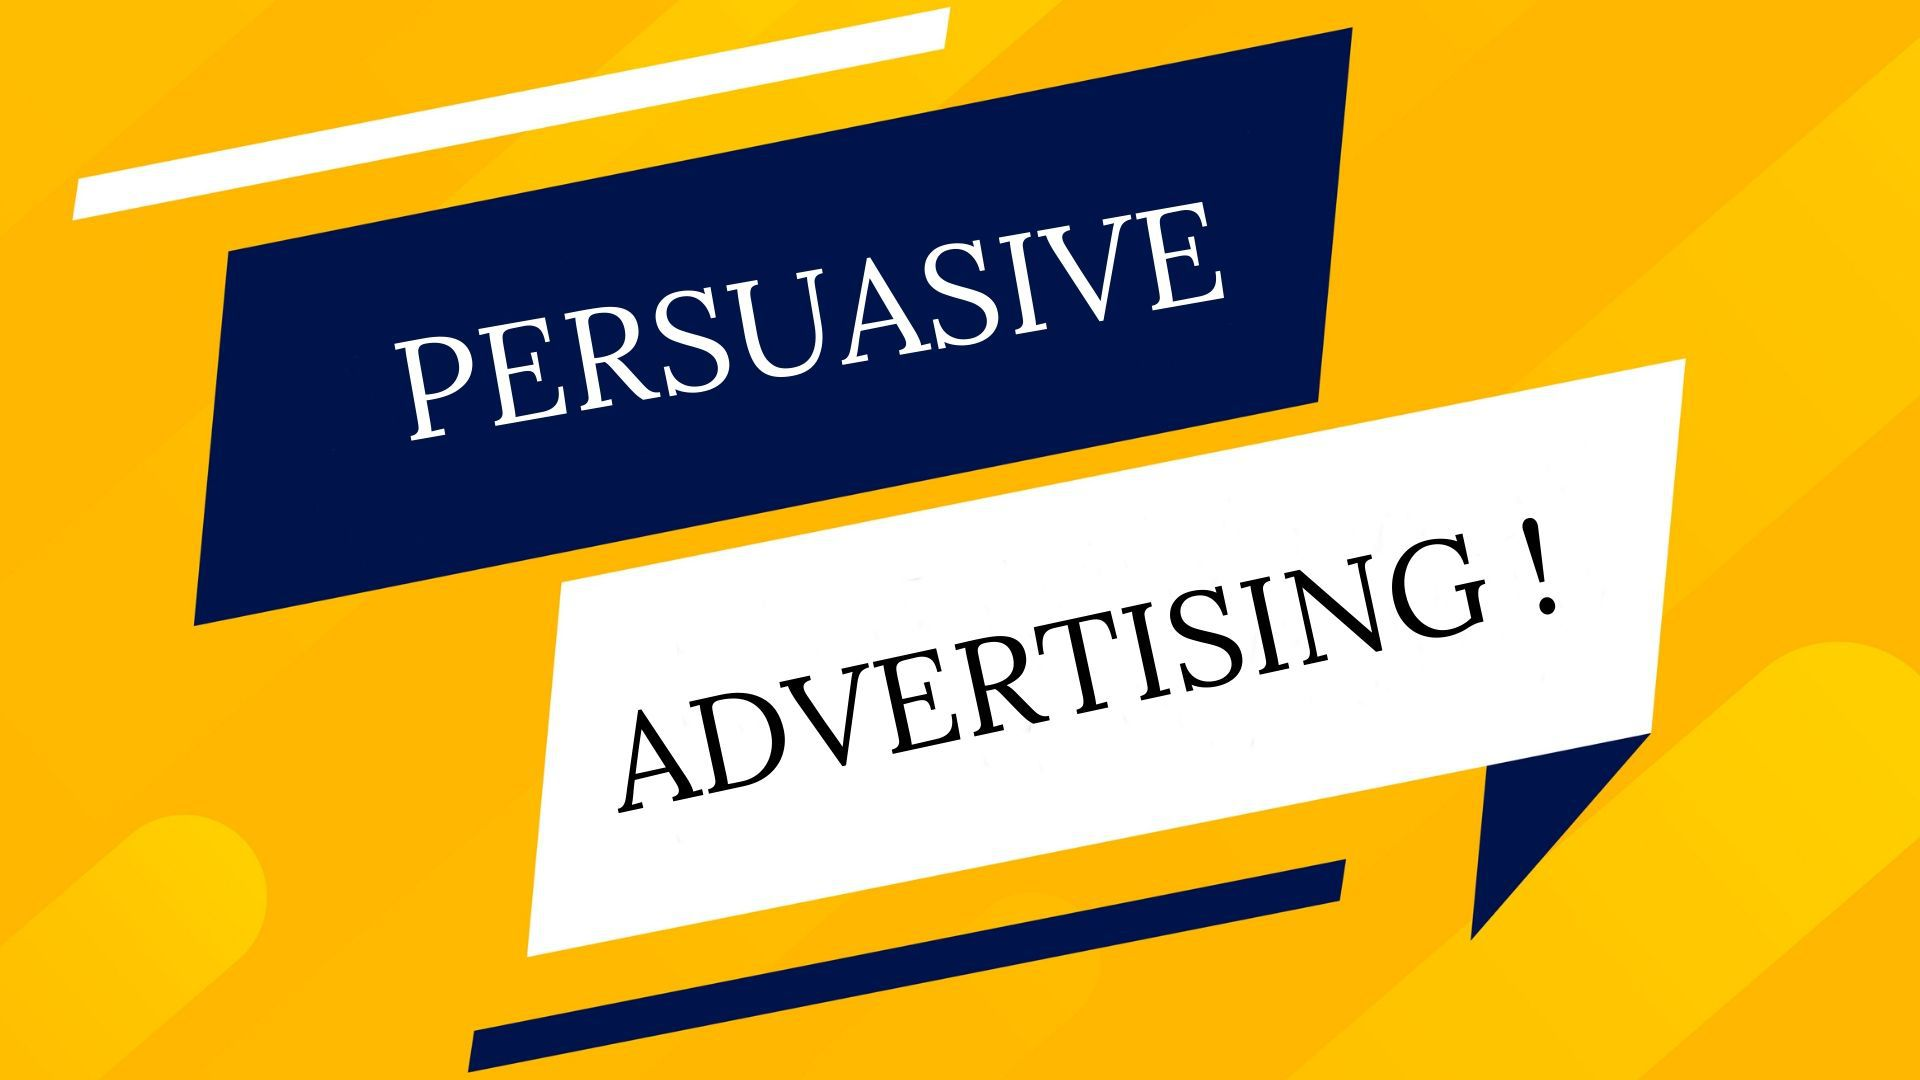 What is Persuasive Advertising